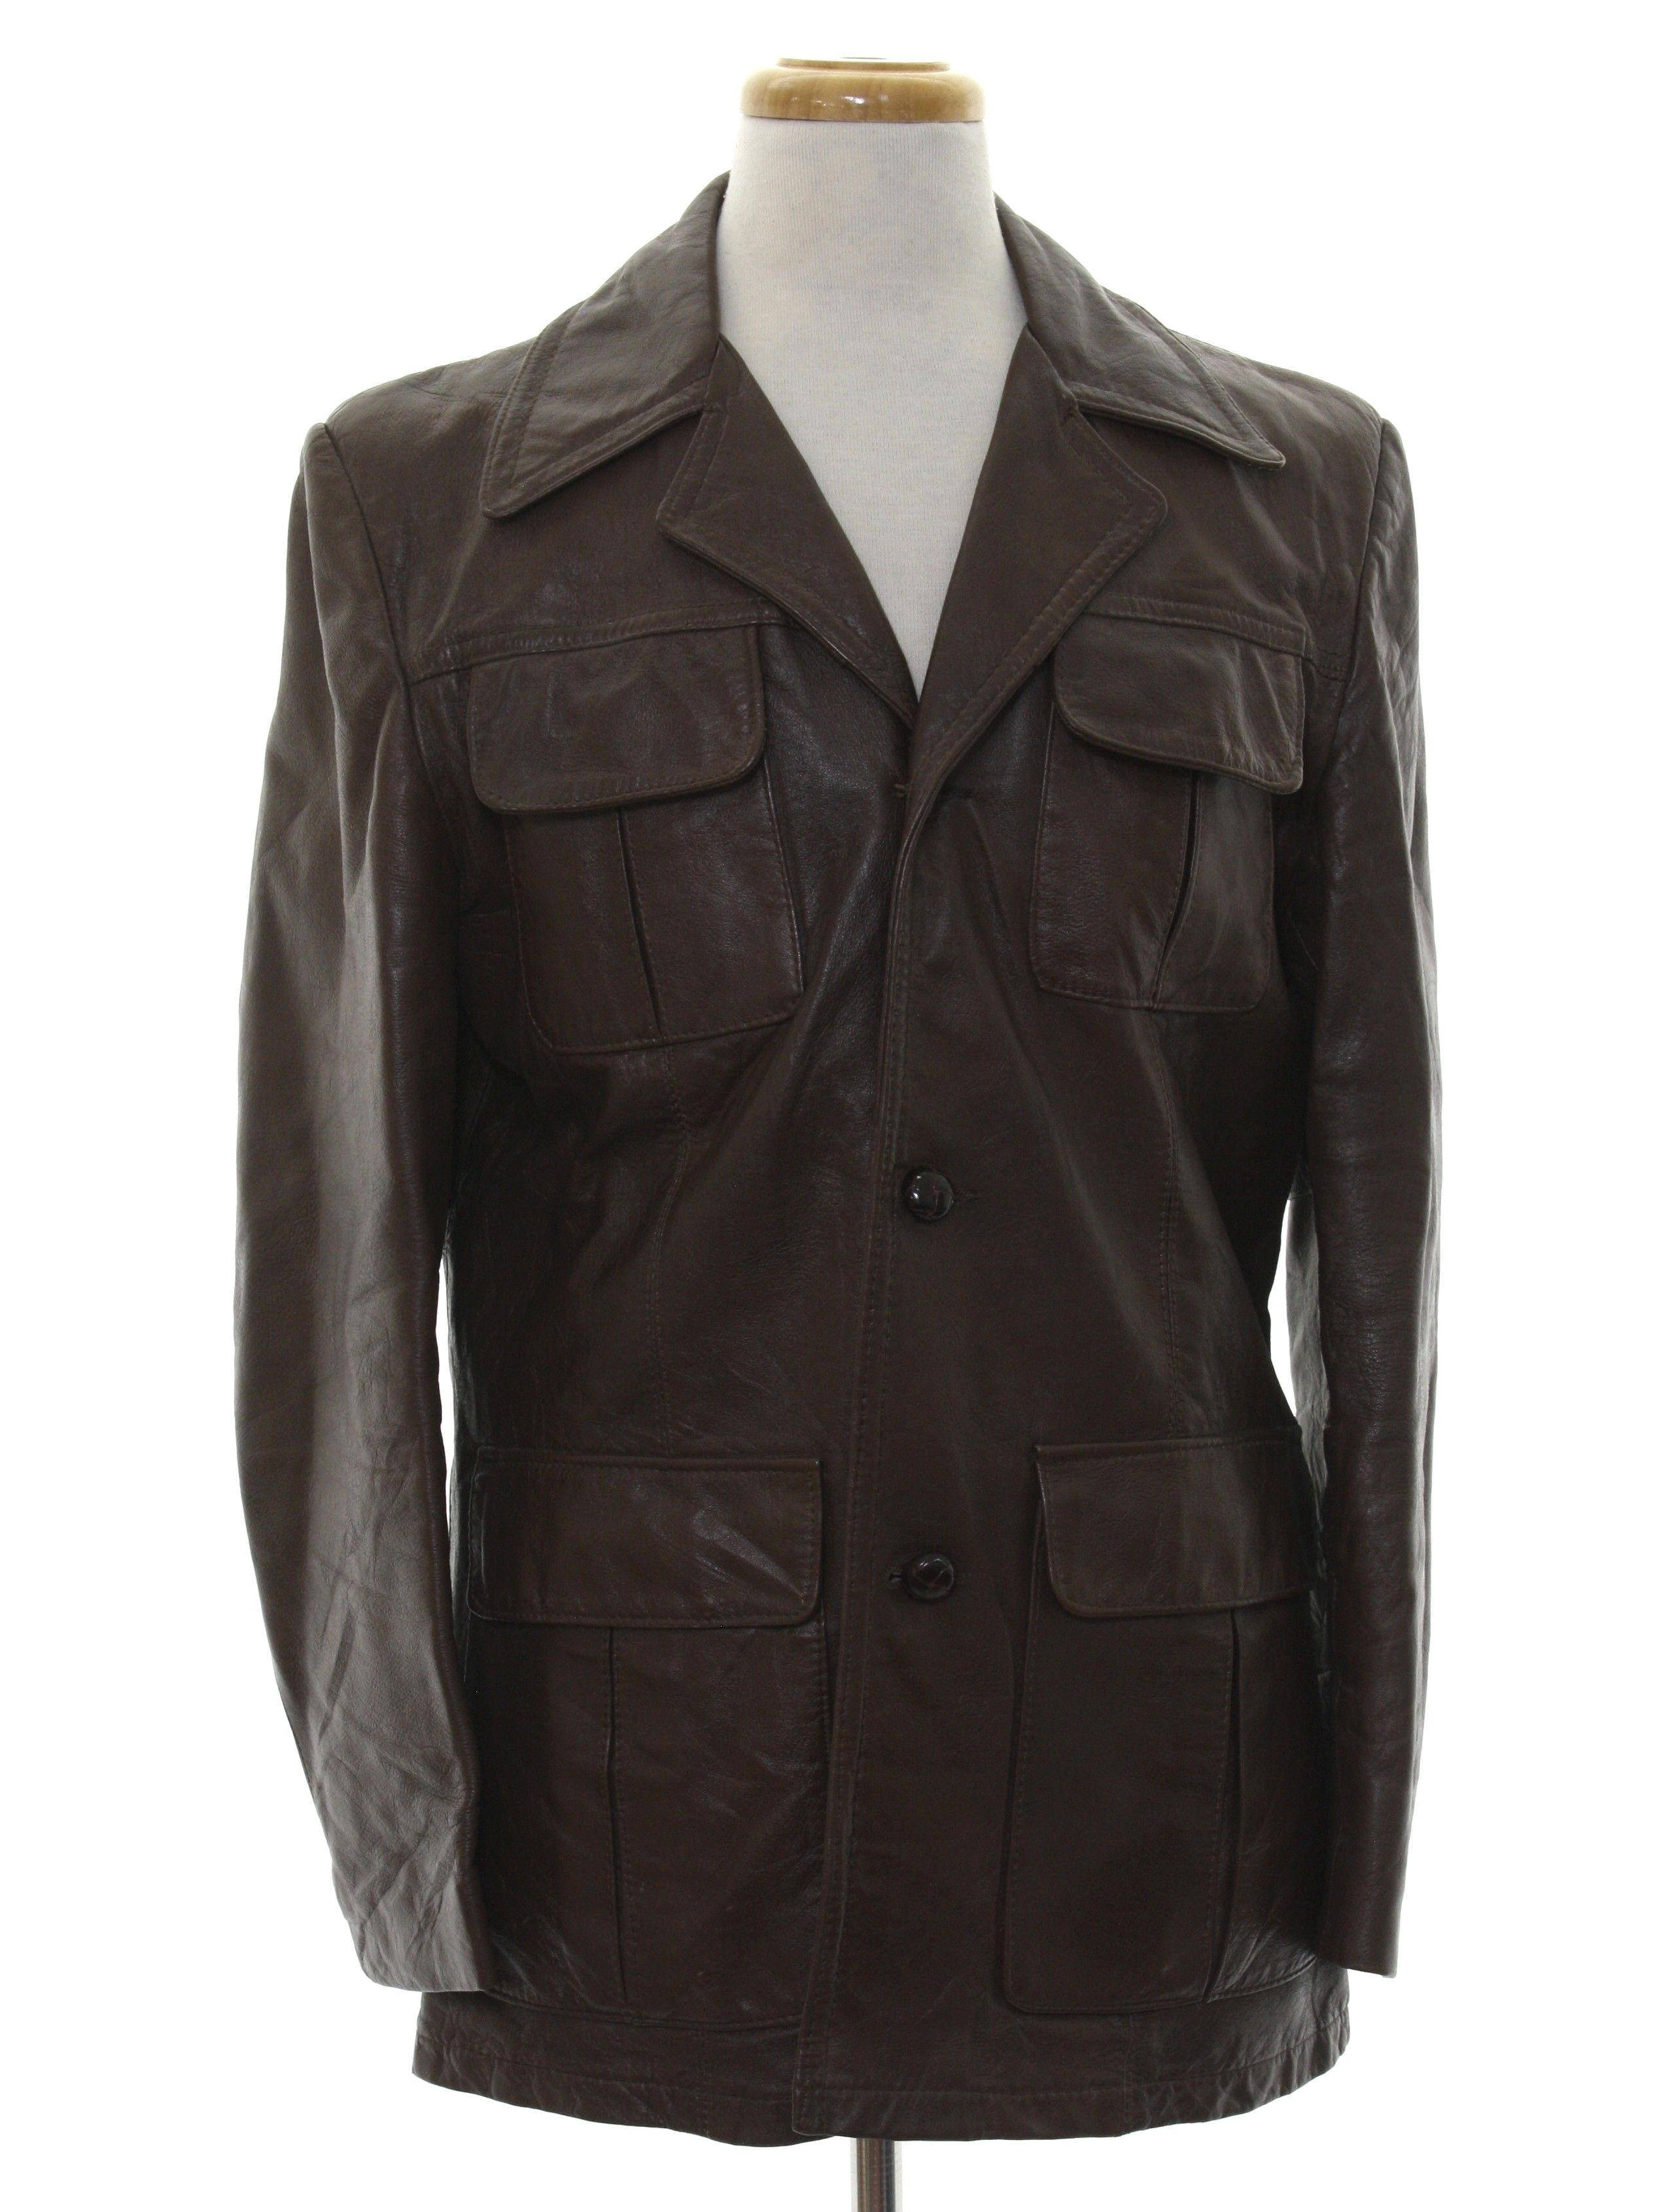 a609dd4e831 1970s Vintage Leather Jacket: 70s -Rice Sports Wear- Mens dark brown  background leather longsleeve 3 button front closure leather car coat jacket .